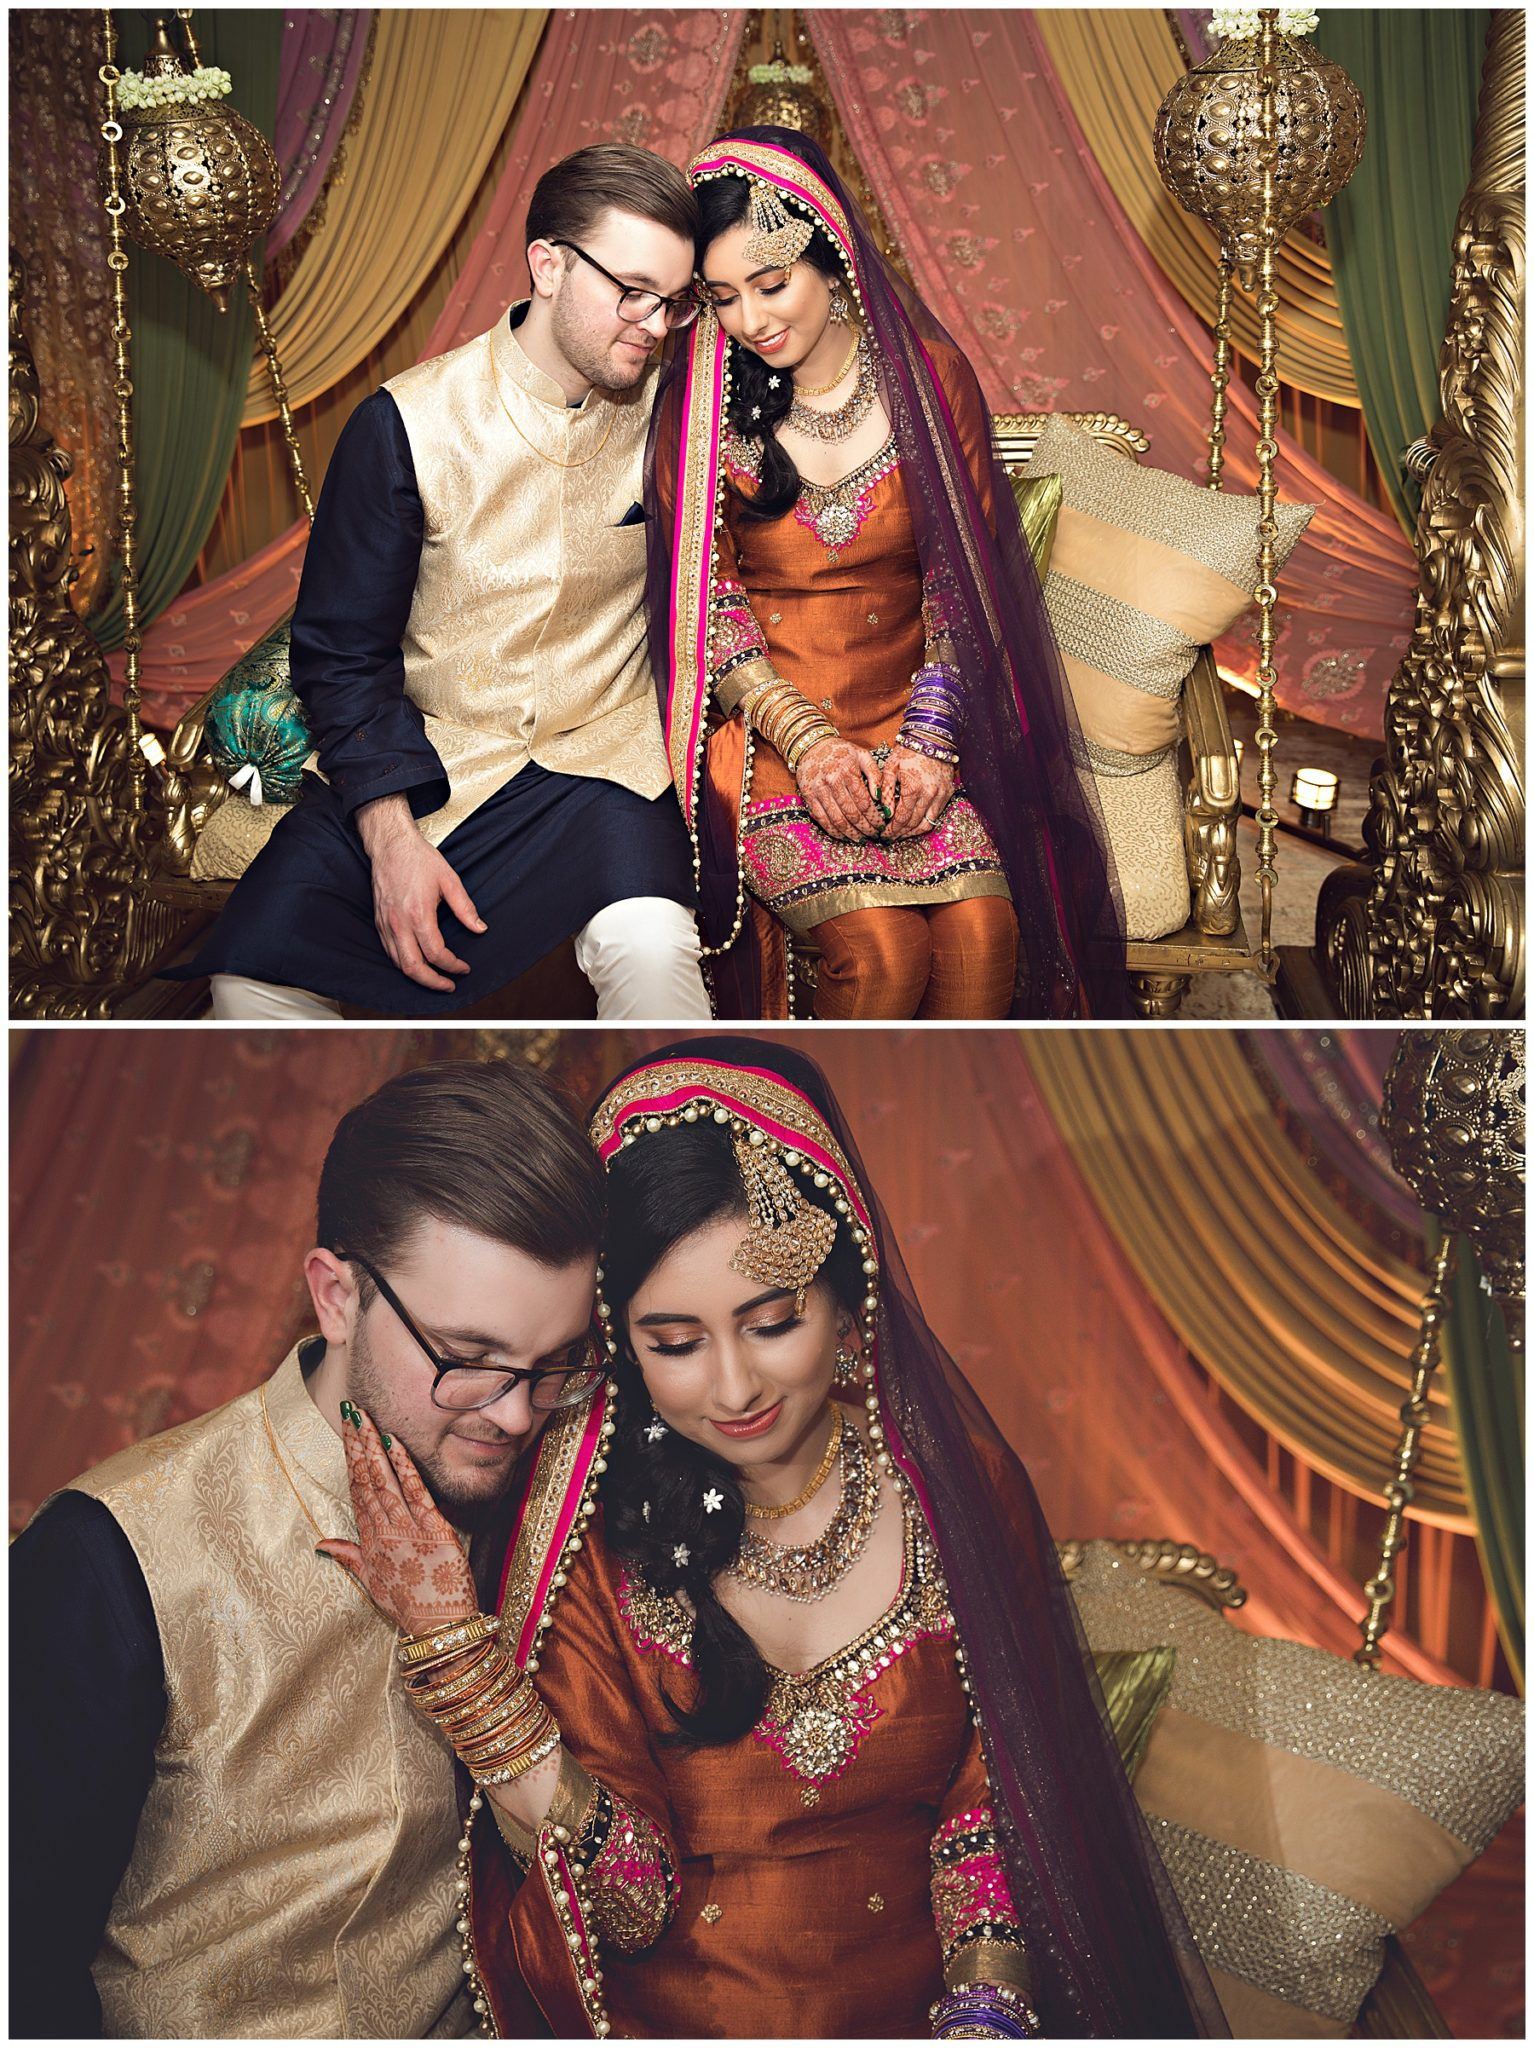 Bride and Groom at Mehndi Radisson in Kalamazoo MI